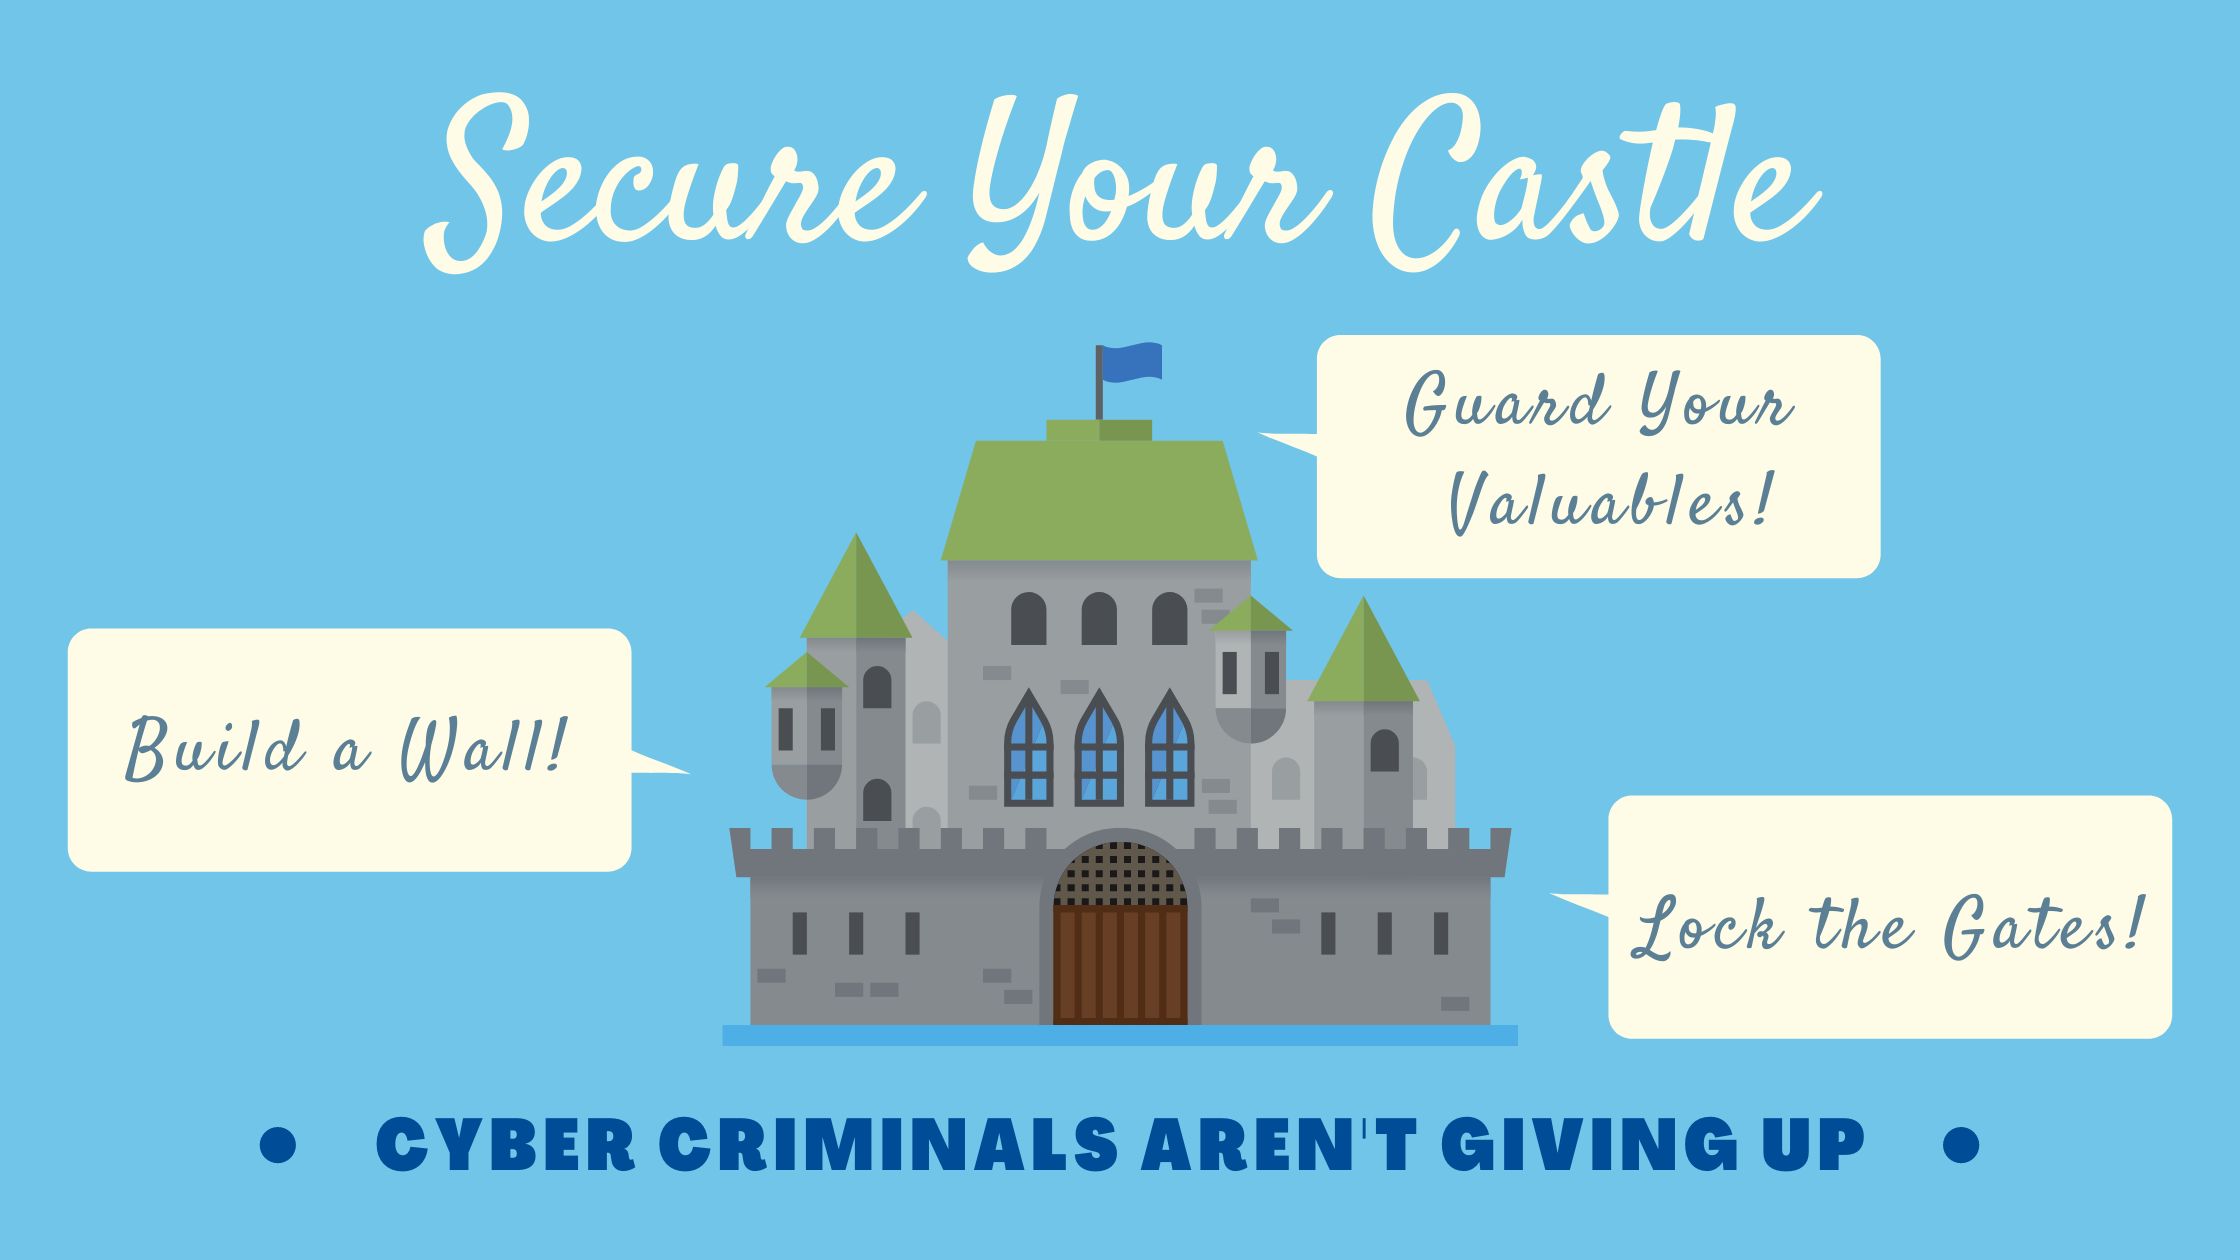 Secure Your Castle - Cyber Criminals Are Not Giving Up